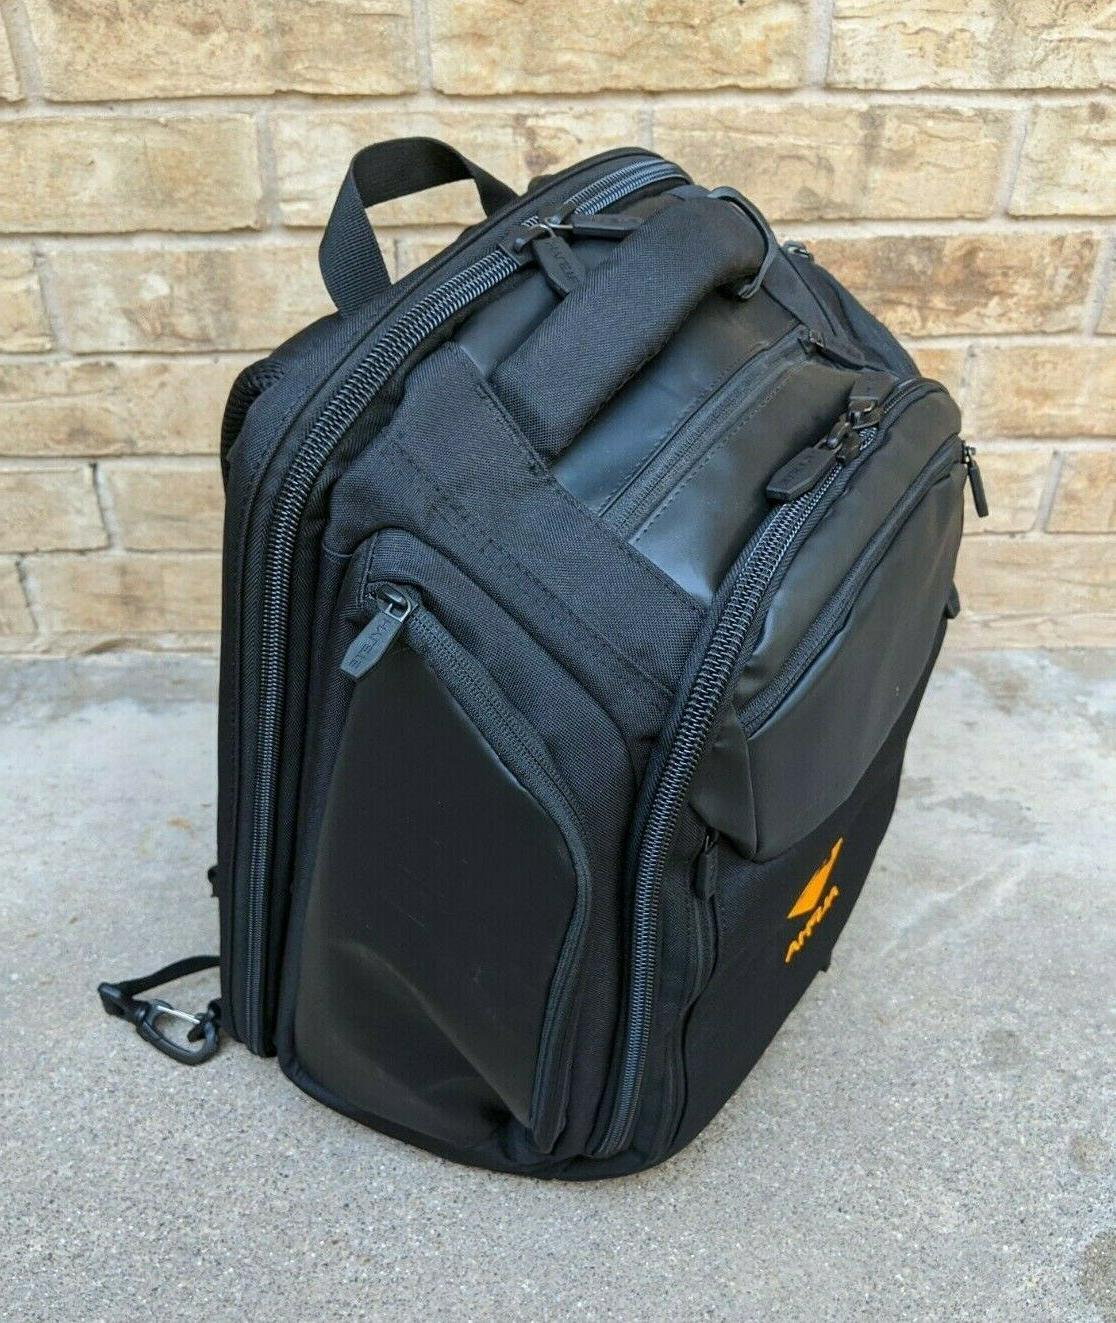 Hylete Gym Bag Backpack Duffel Multi-Purpose Expand